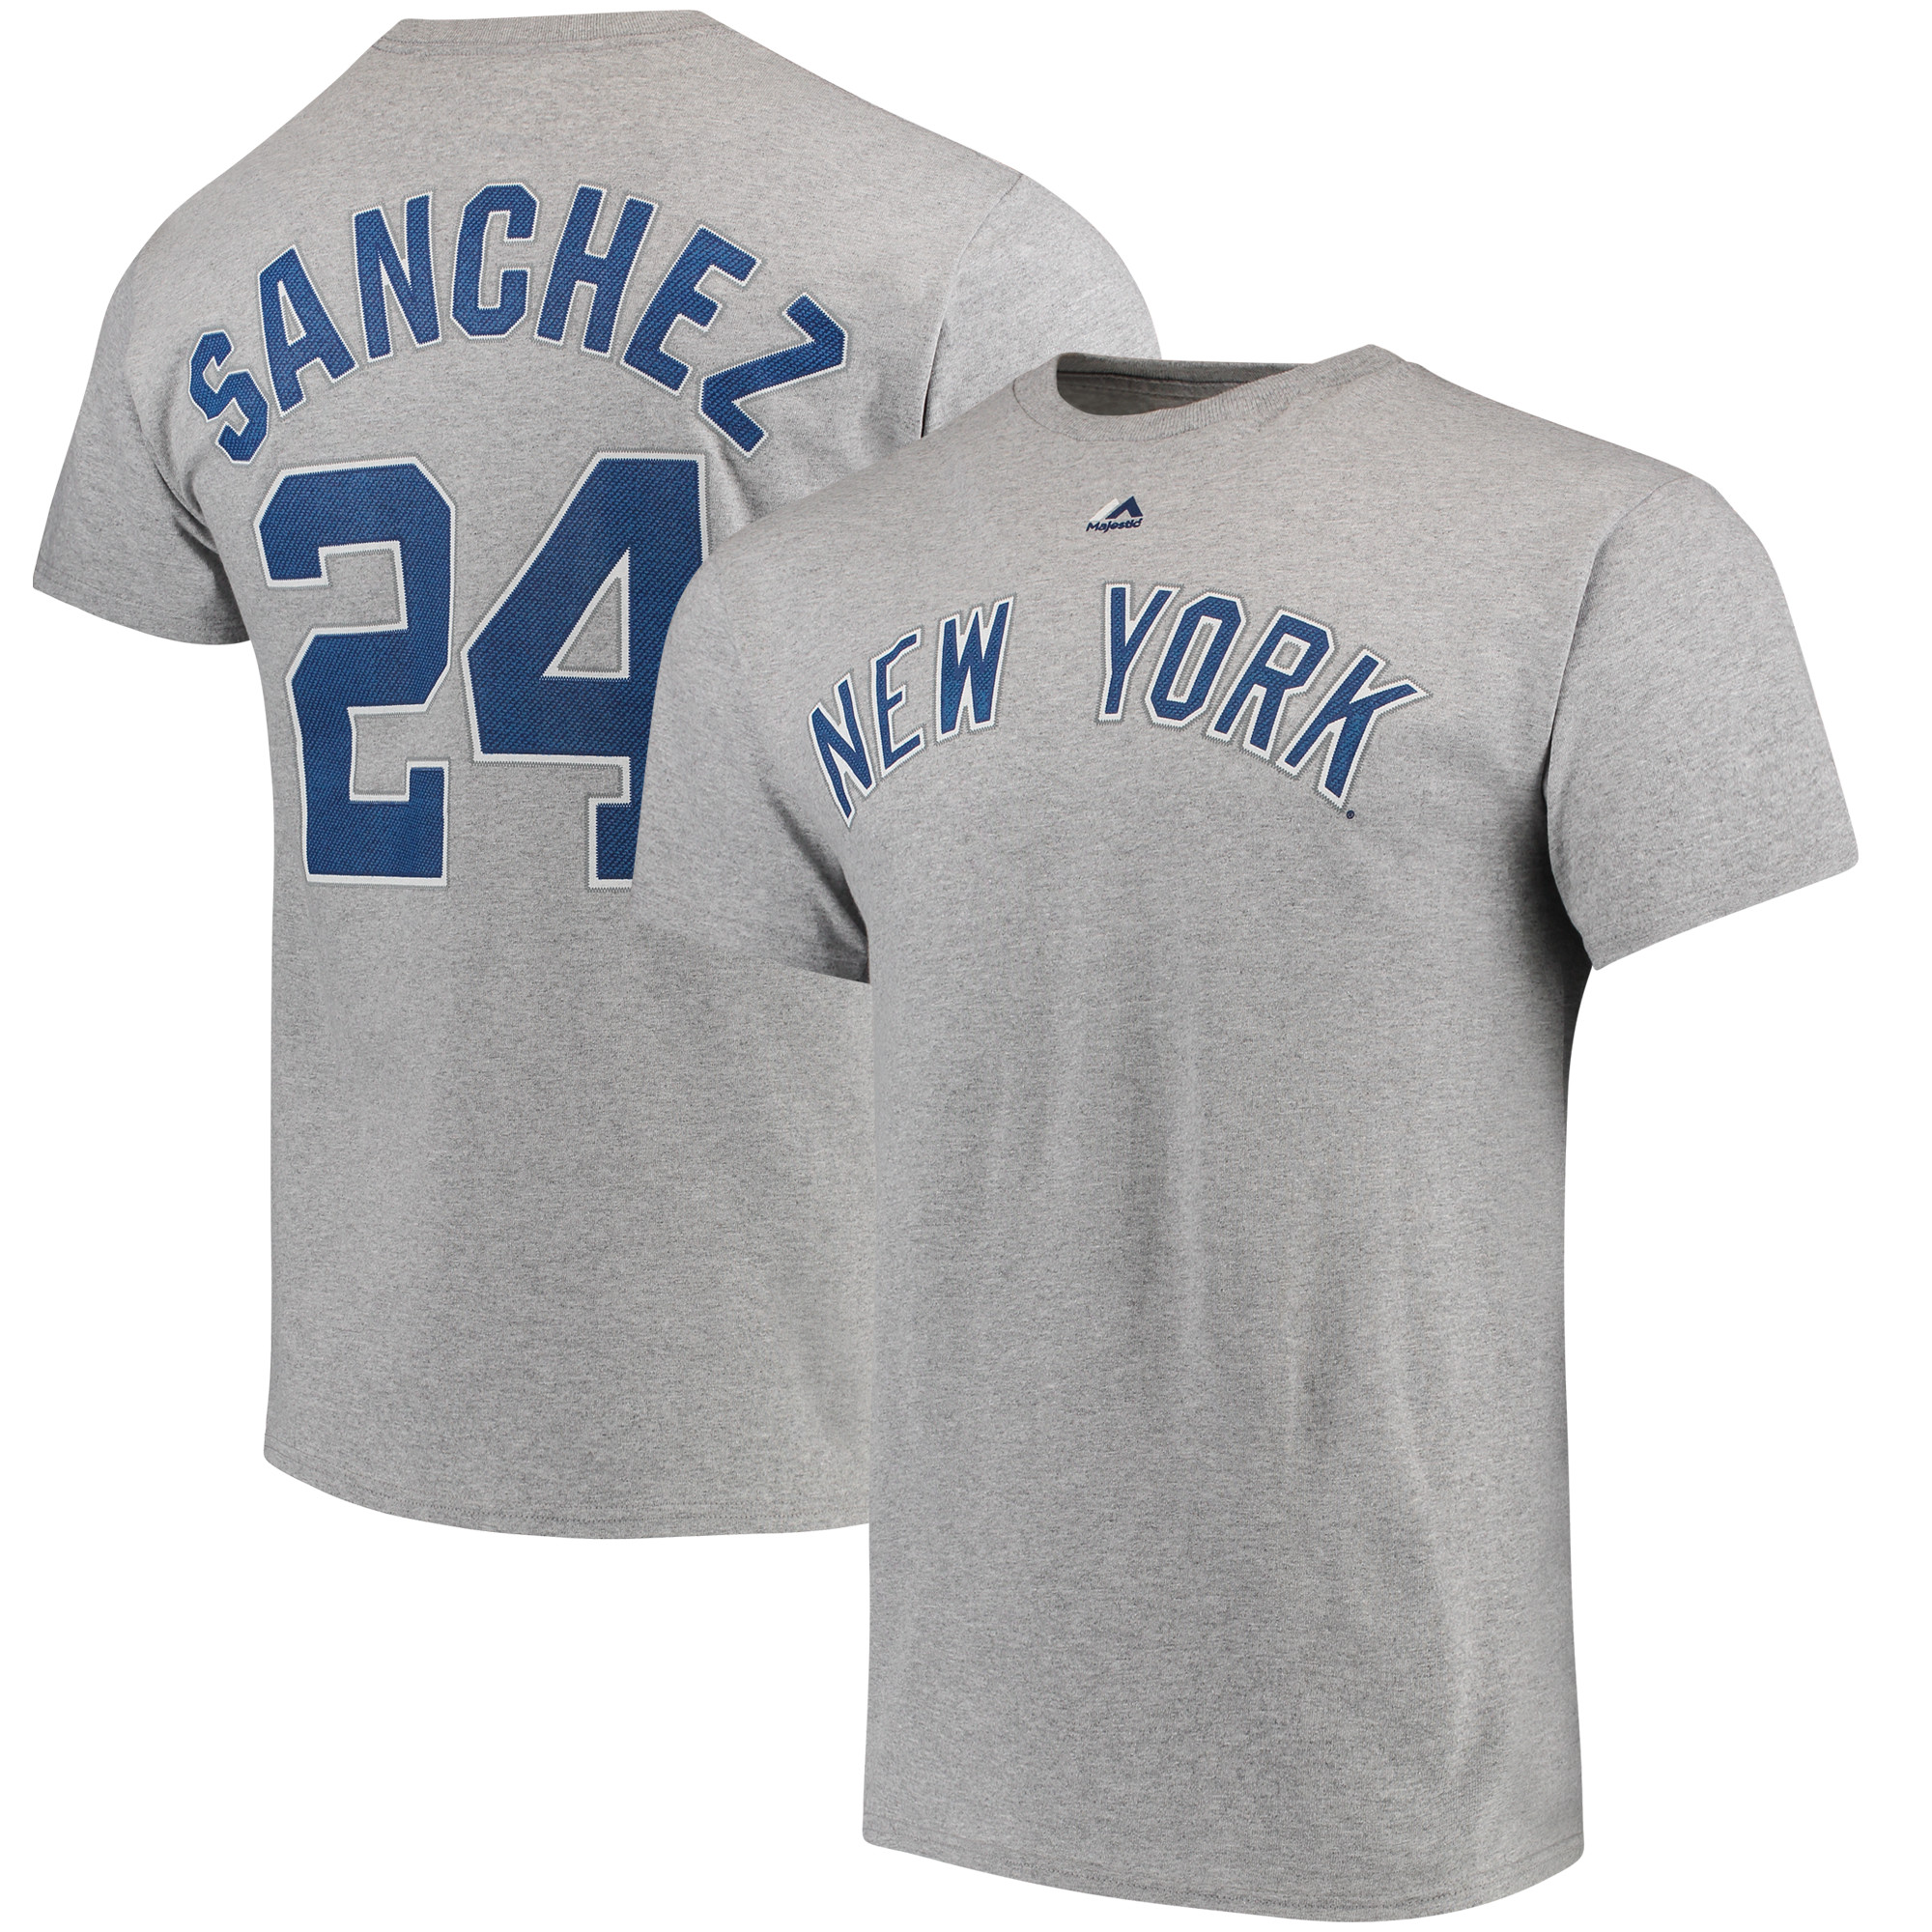 Gary Sanchez New York Yankees Majestic Official Name & Number T-Shirt - Gray